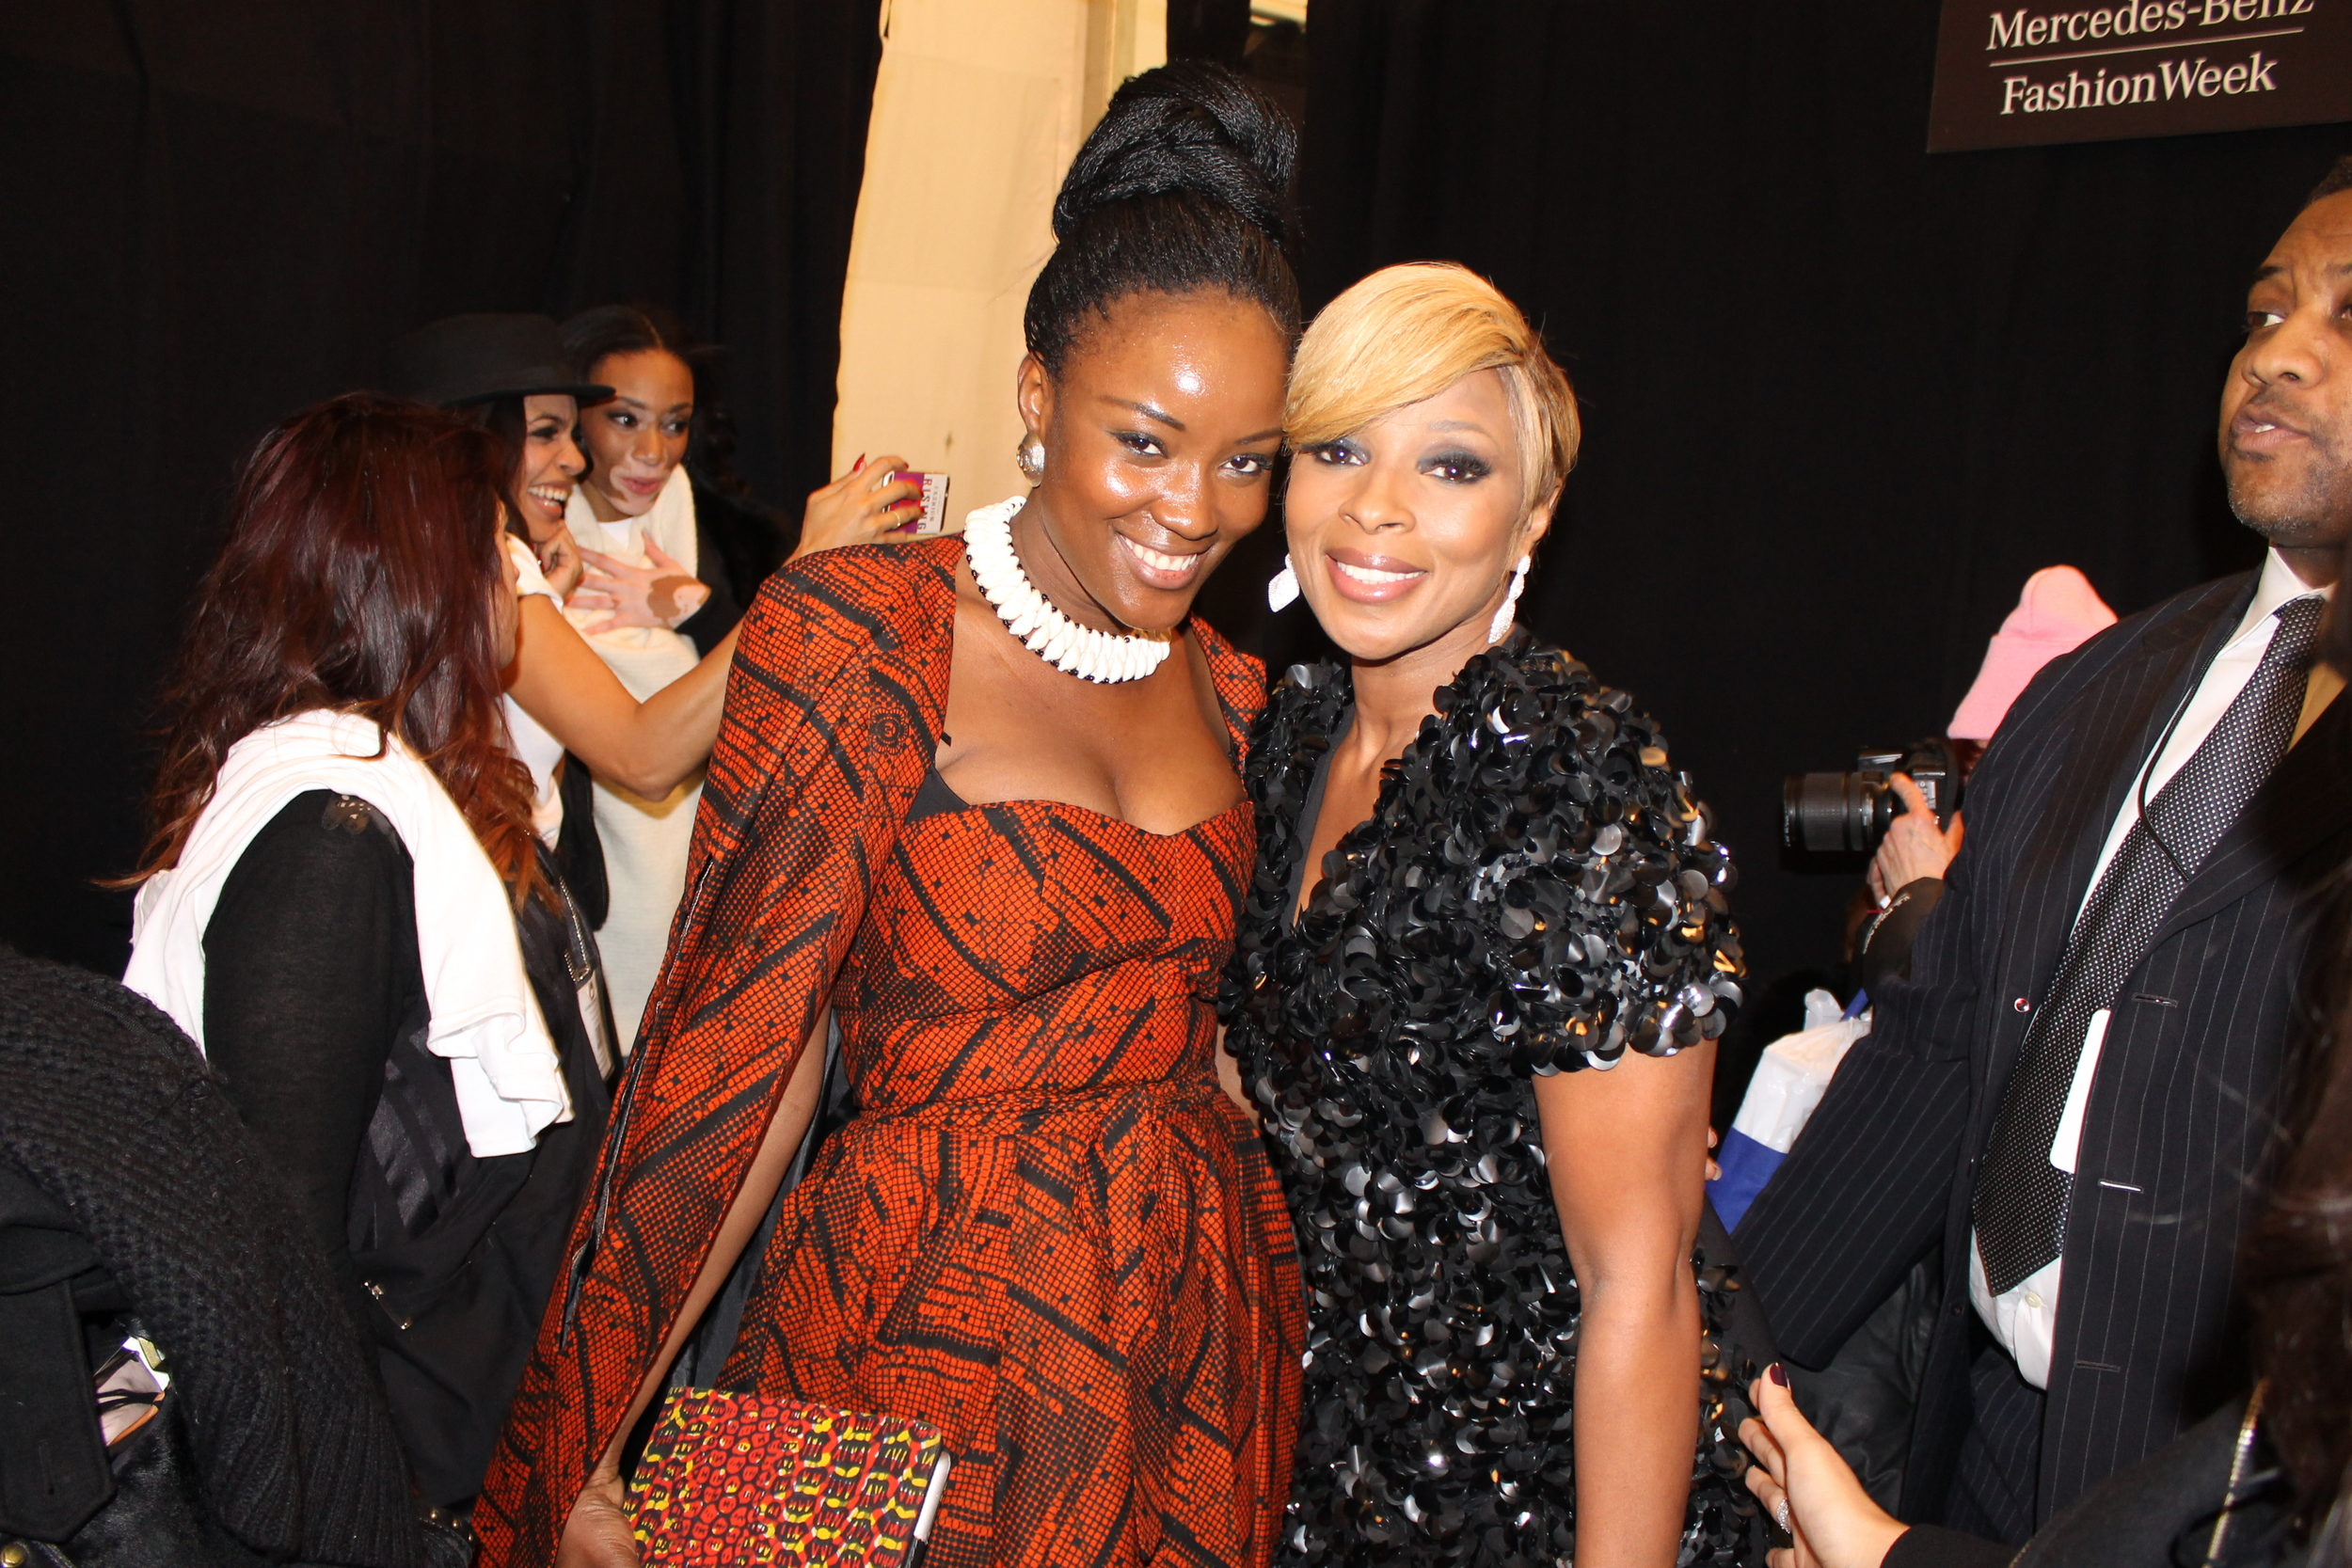 Mary J. Blige was incredibly humble, beautiful and sweet. Her spirit was just awesome. Plus check out Rosario and model Chantelle Young-Brown taking a self in the background, lol.